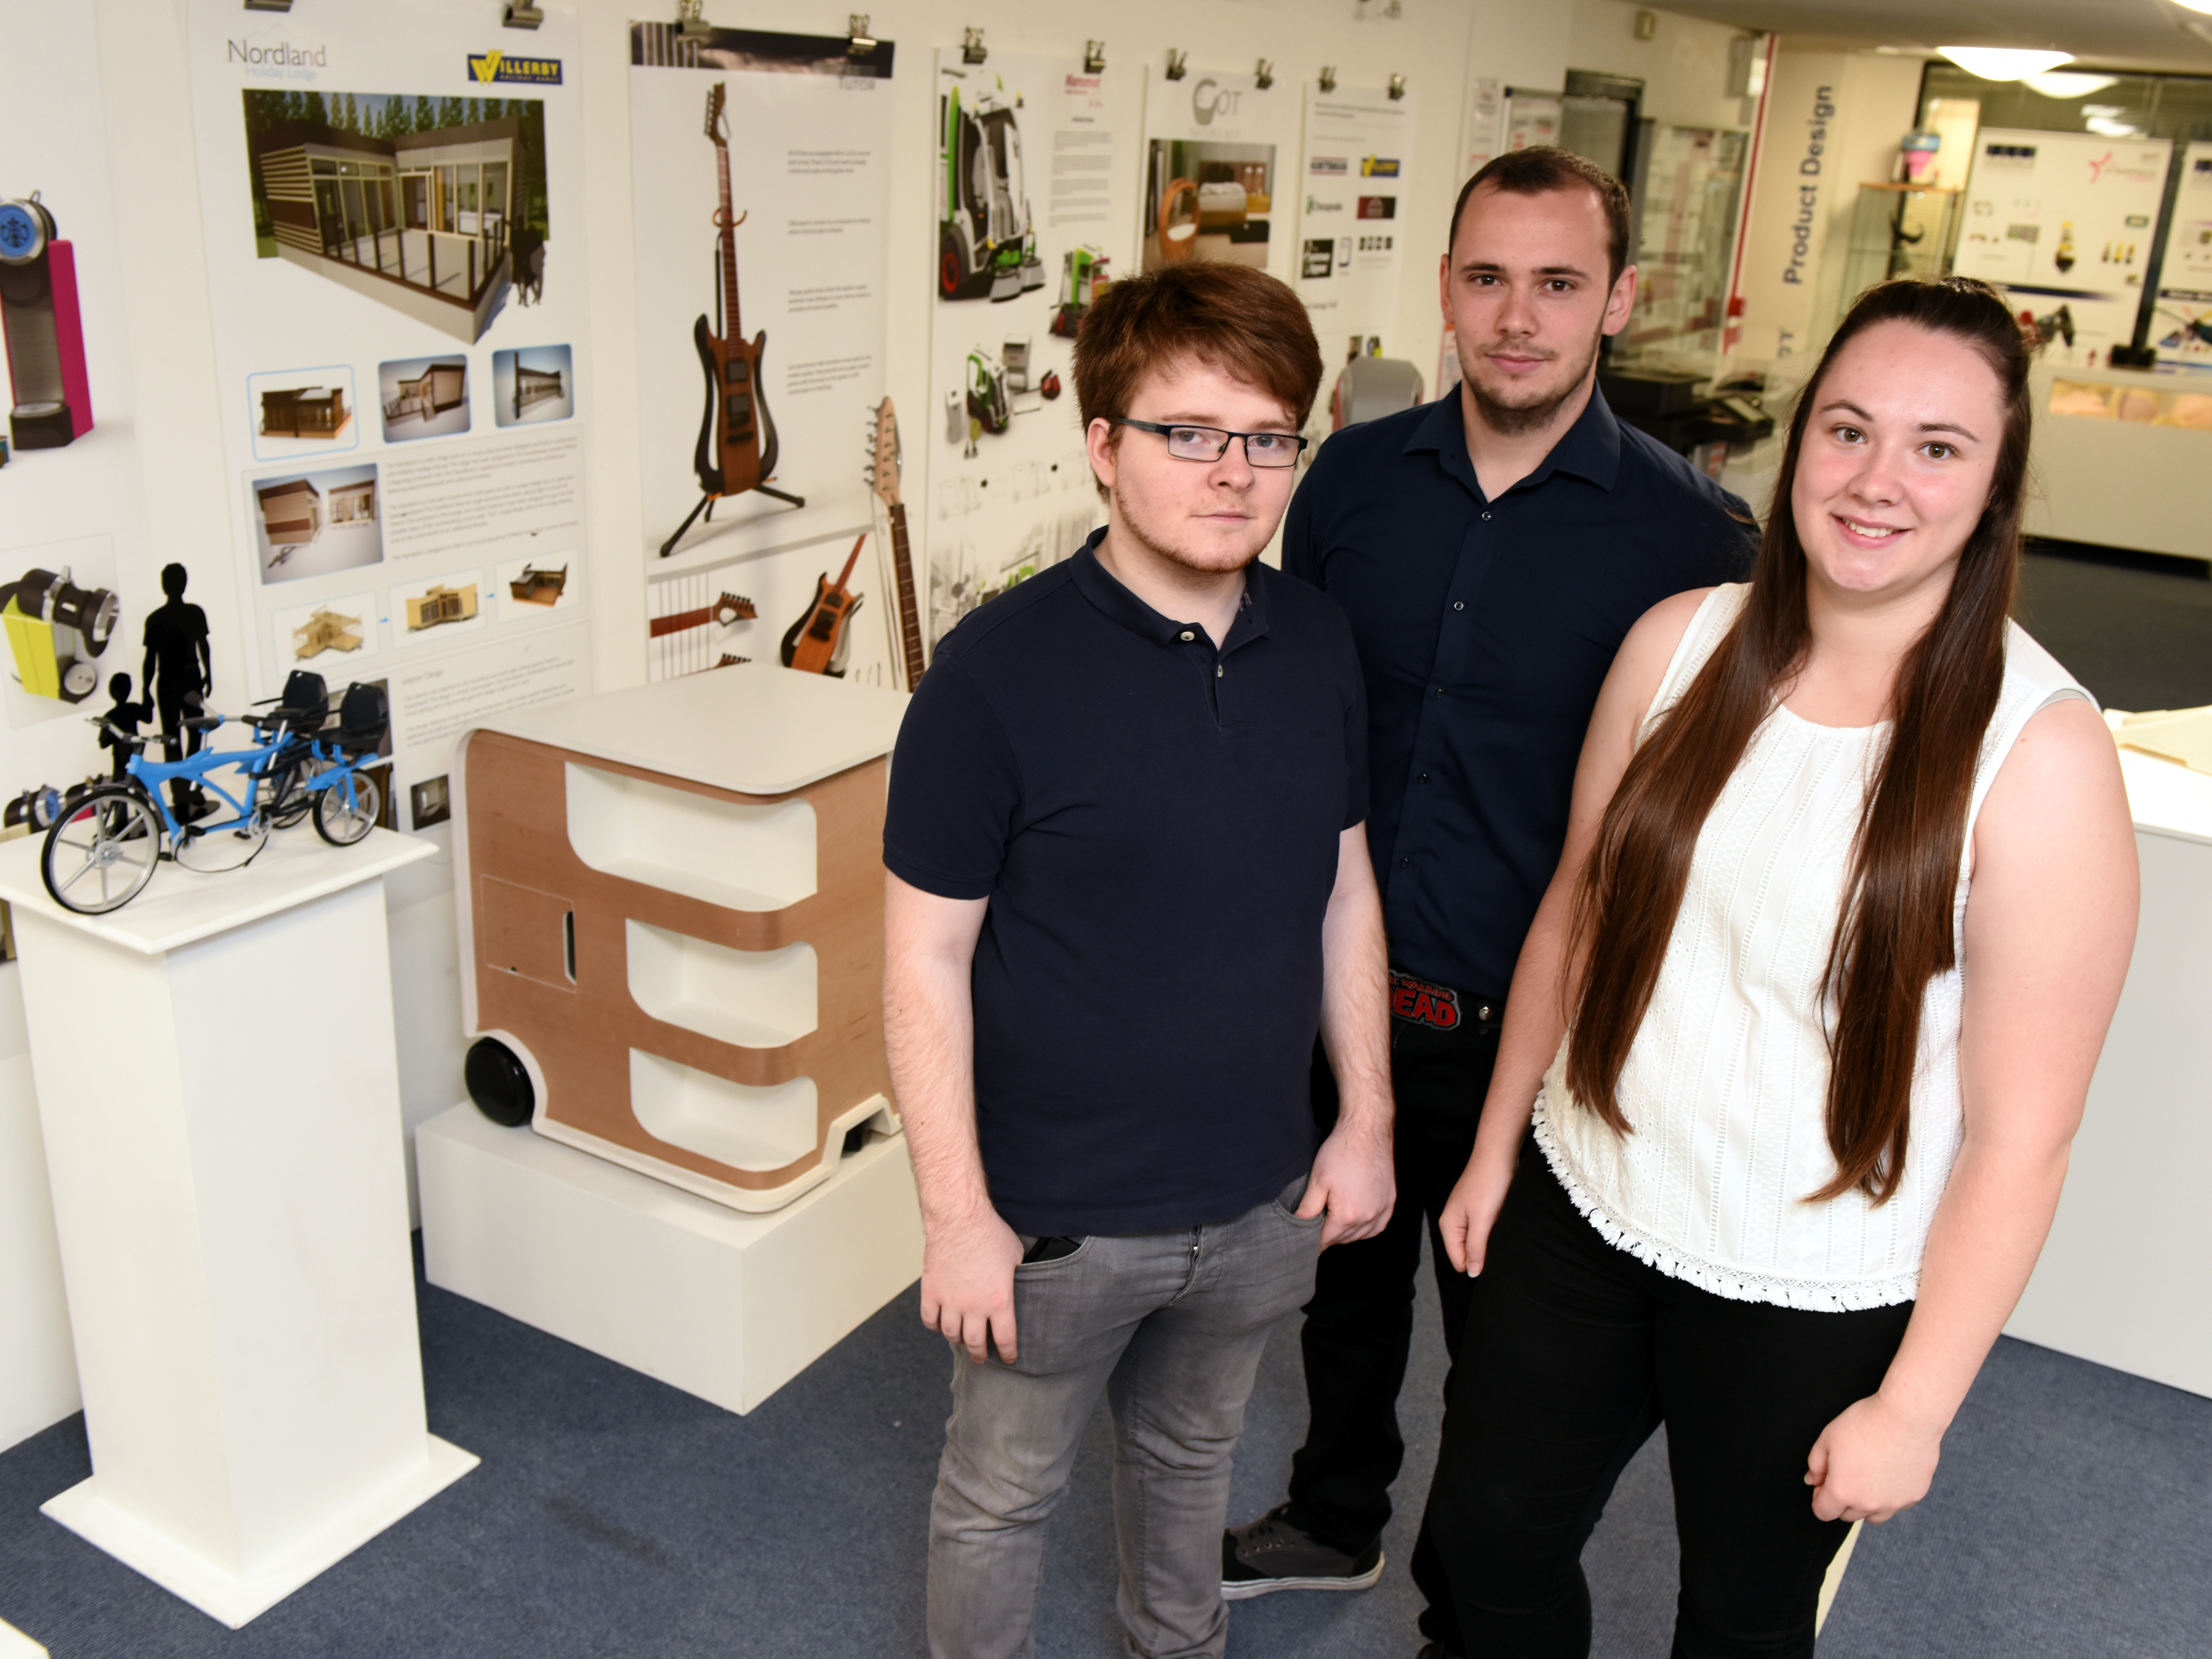 Three of the Teesside University prize winners, Declan Carter, Lewis Brown and Chantelle Wilson